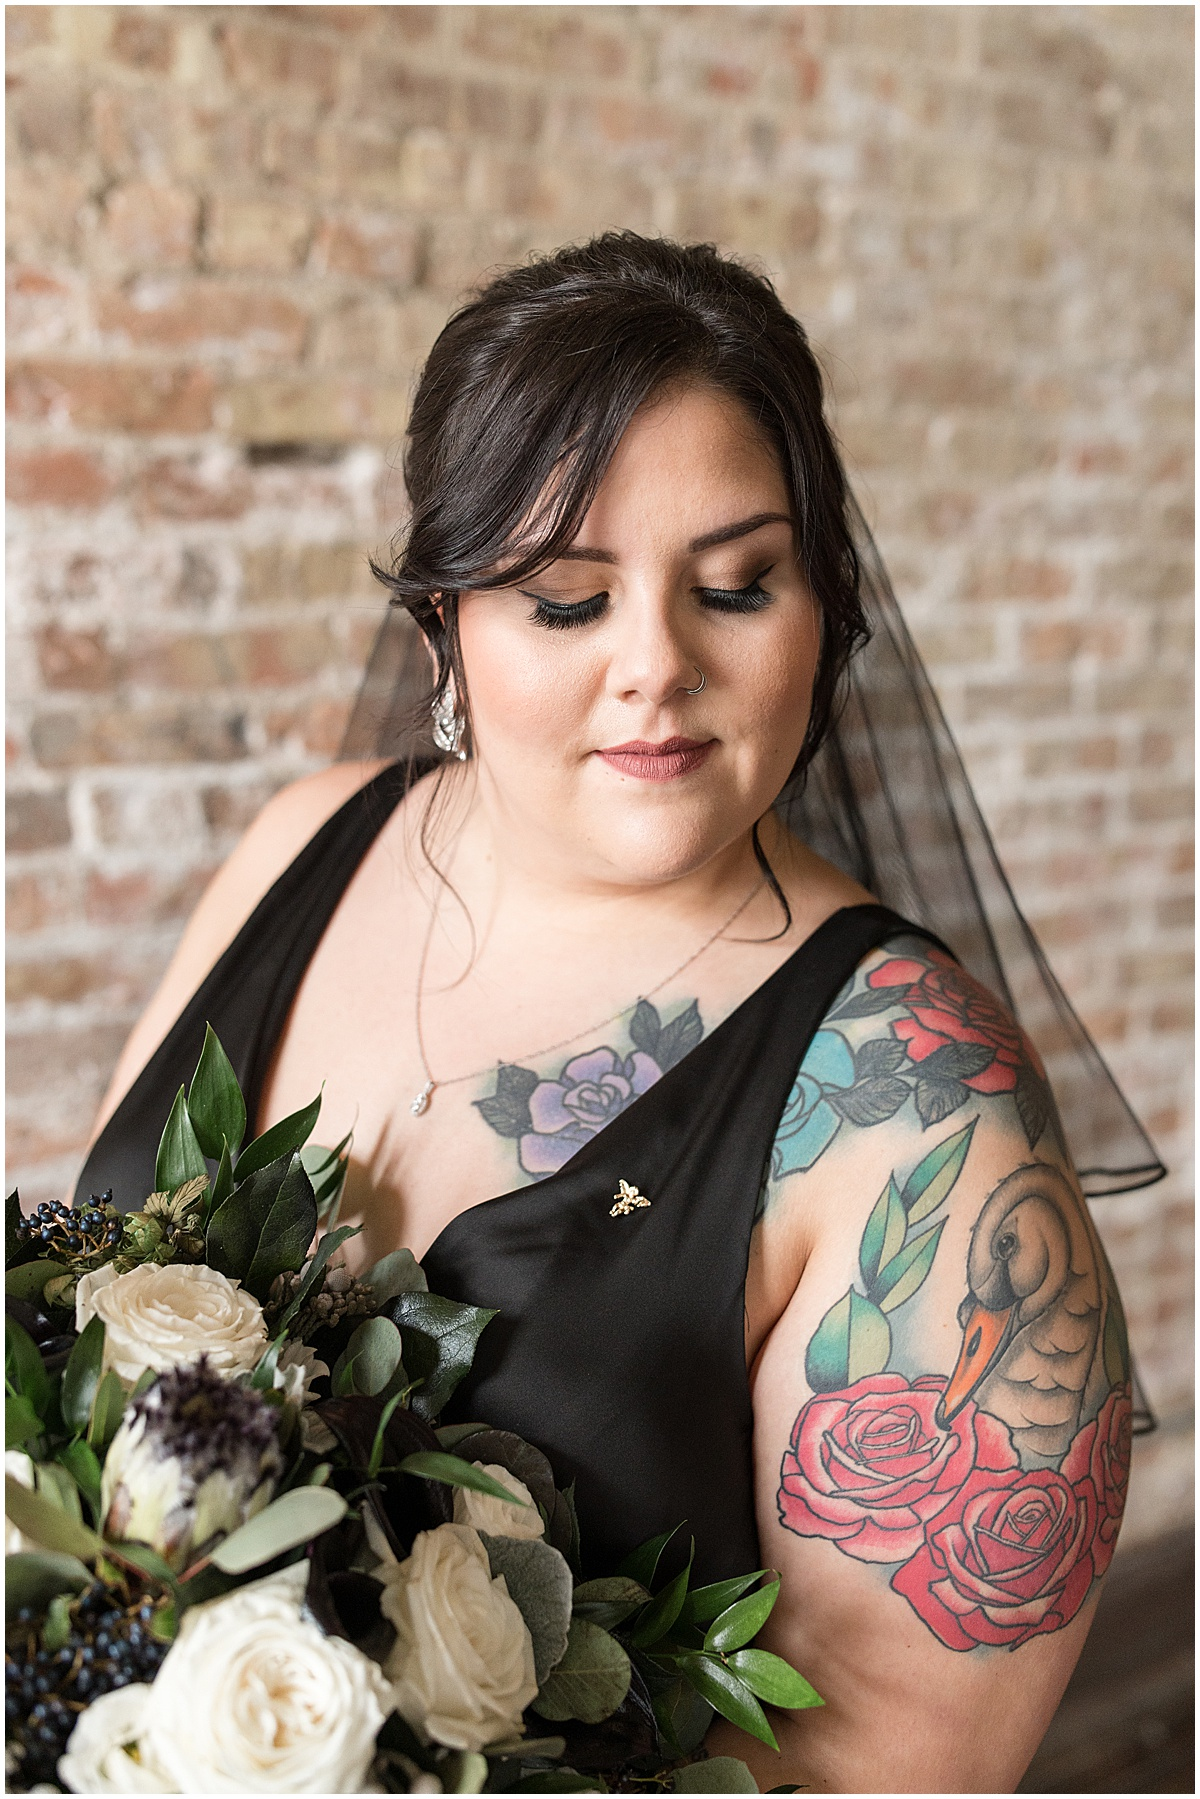 Bride portraits for eMbers Venue wedding in Rensselaer, Indiana